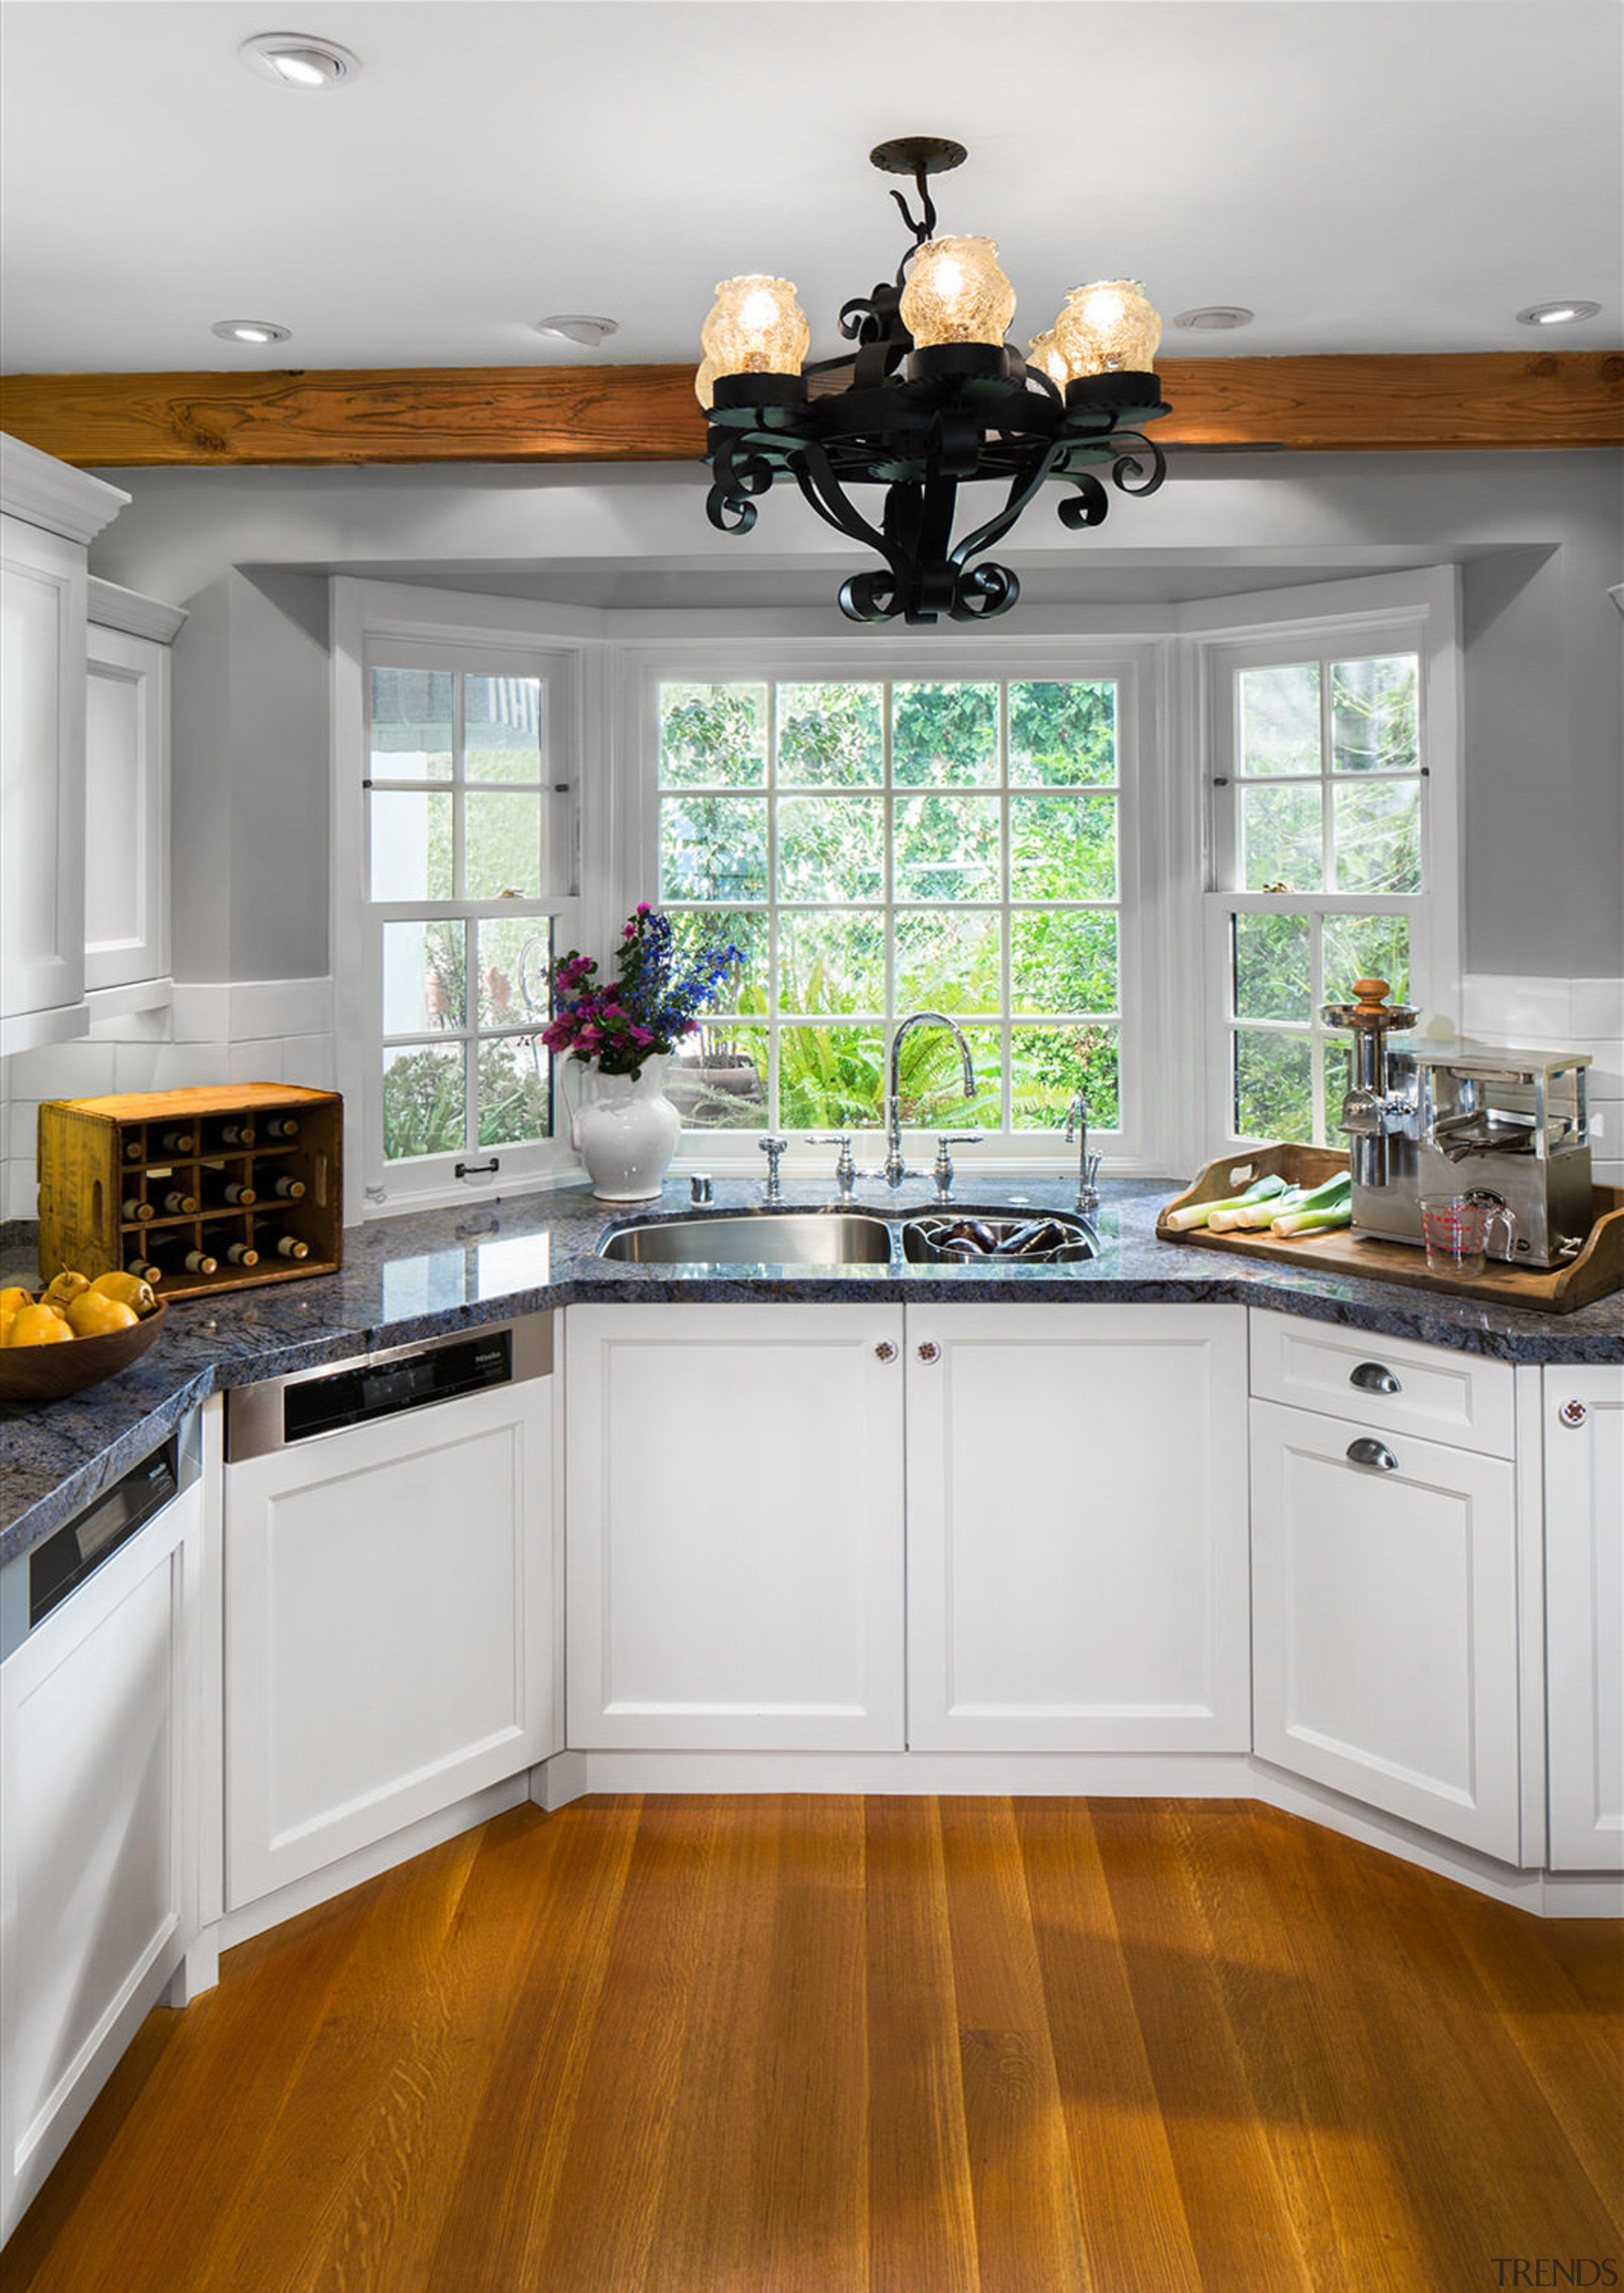 A Bay Window At One End Of This Cabinetry Countertop Cuisine Classique Interior Design Kitchen Ro Kitchen Renovation Kitchen Remodel Small Country Kitchen